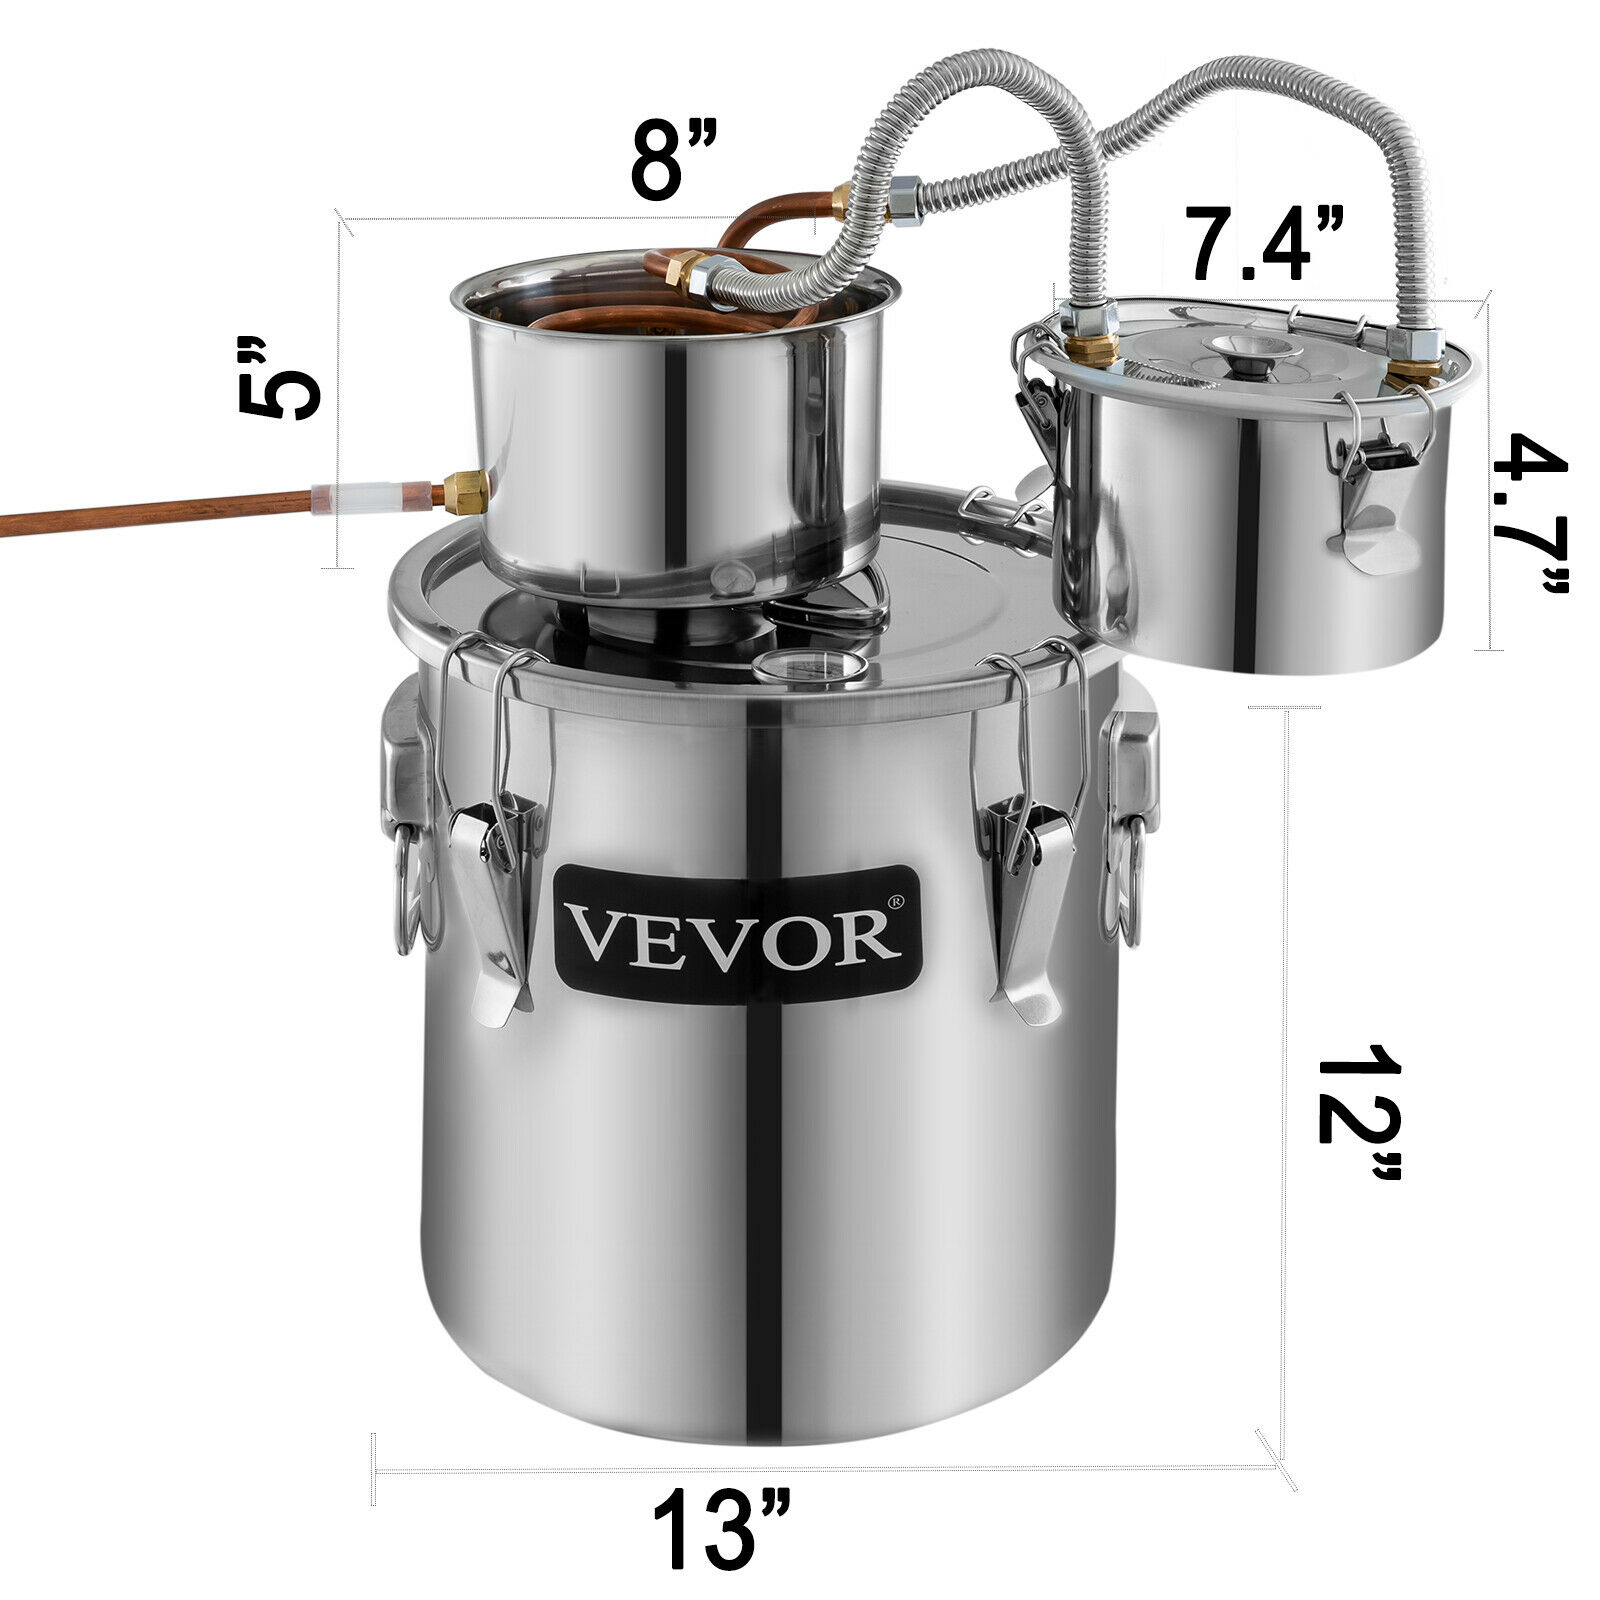 4.6UK GAL Alcohol Distiller 21L Stainless Steel Lute Bucket Obs